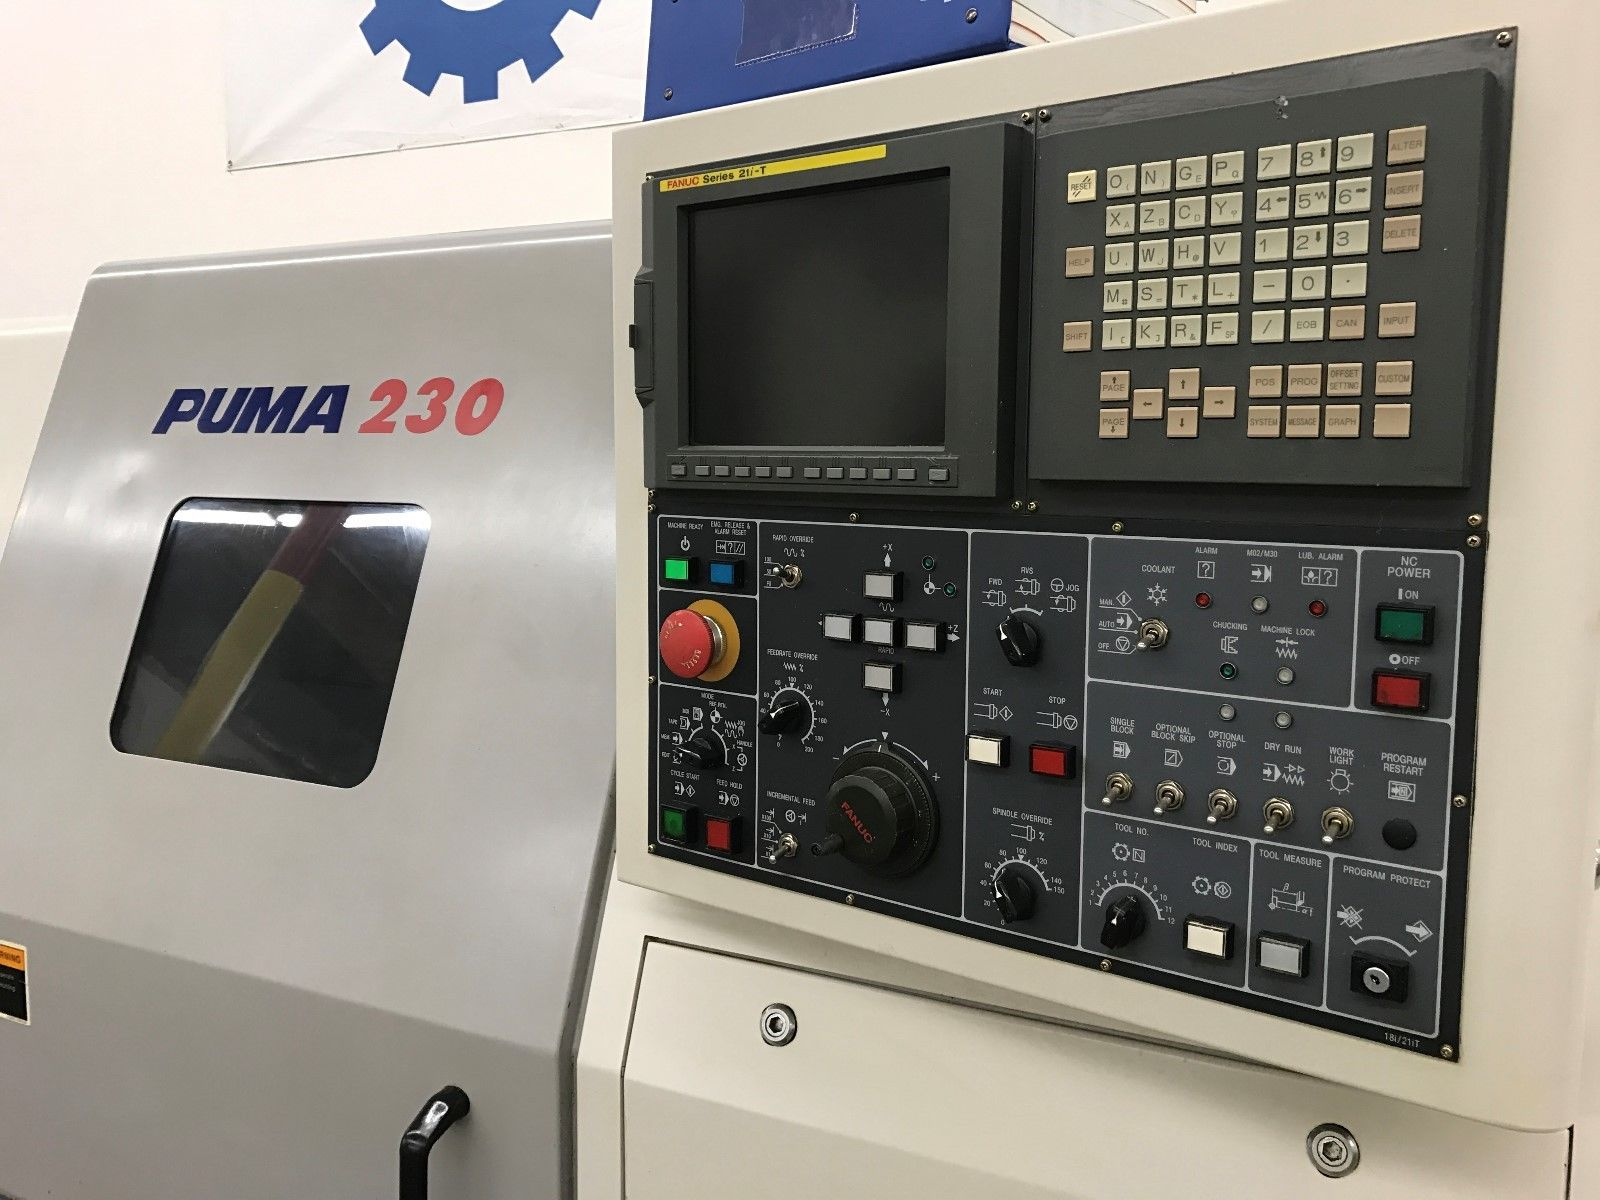 daewoo puma 230c cnc turning center machinestation rh machinestation us Home CNC Machine Types of CNC Machines